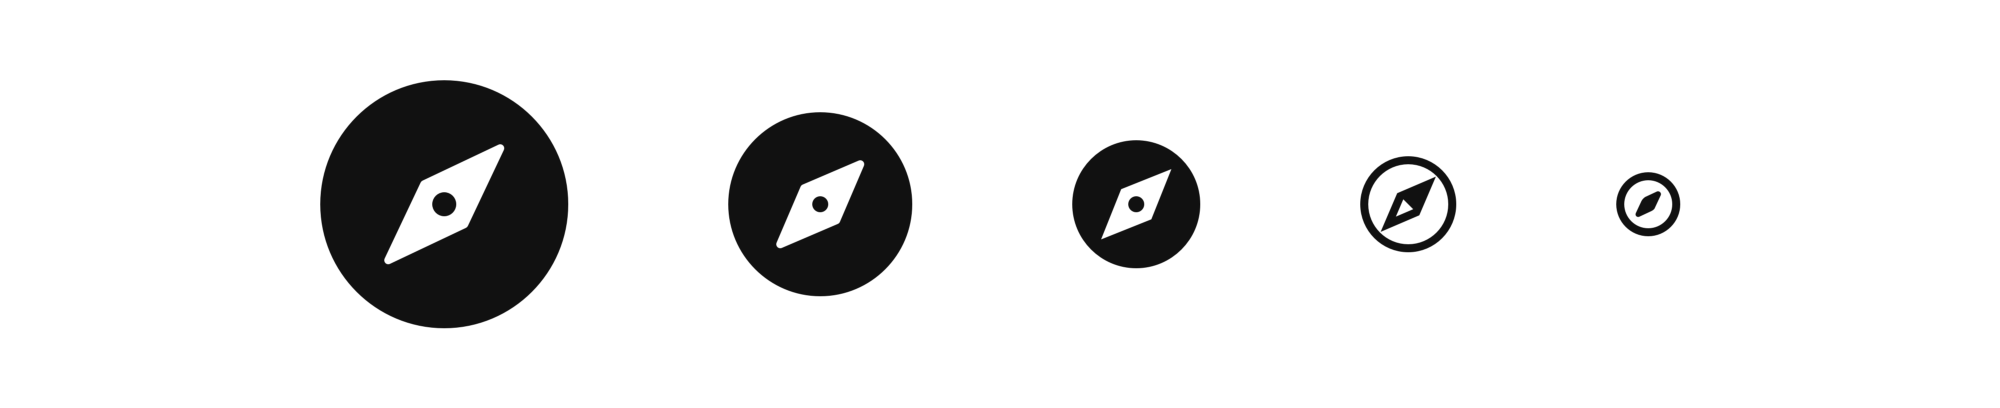 Nucleo's compass icon employs different levels of detail from 64px to 16px